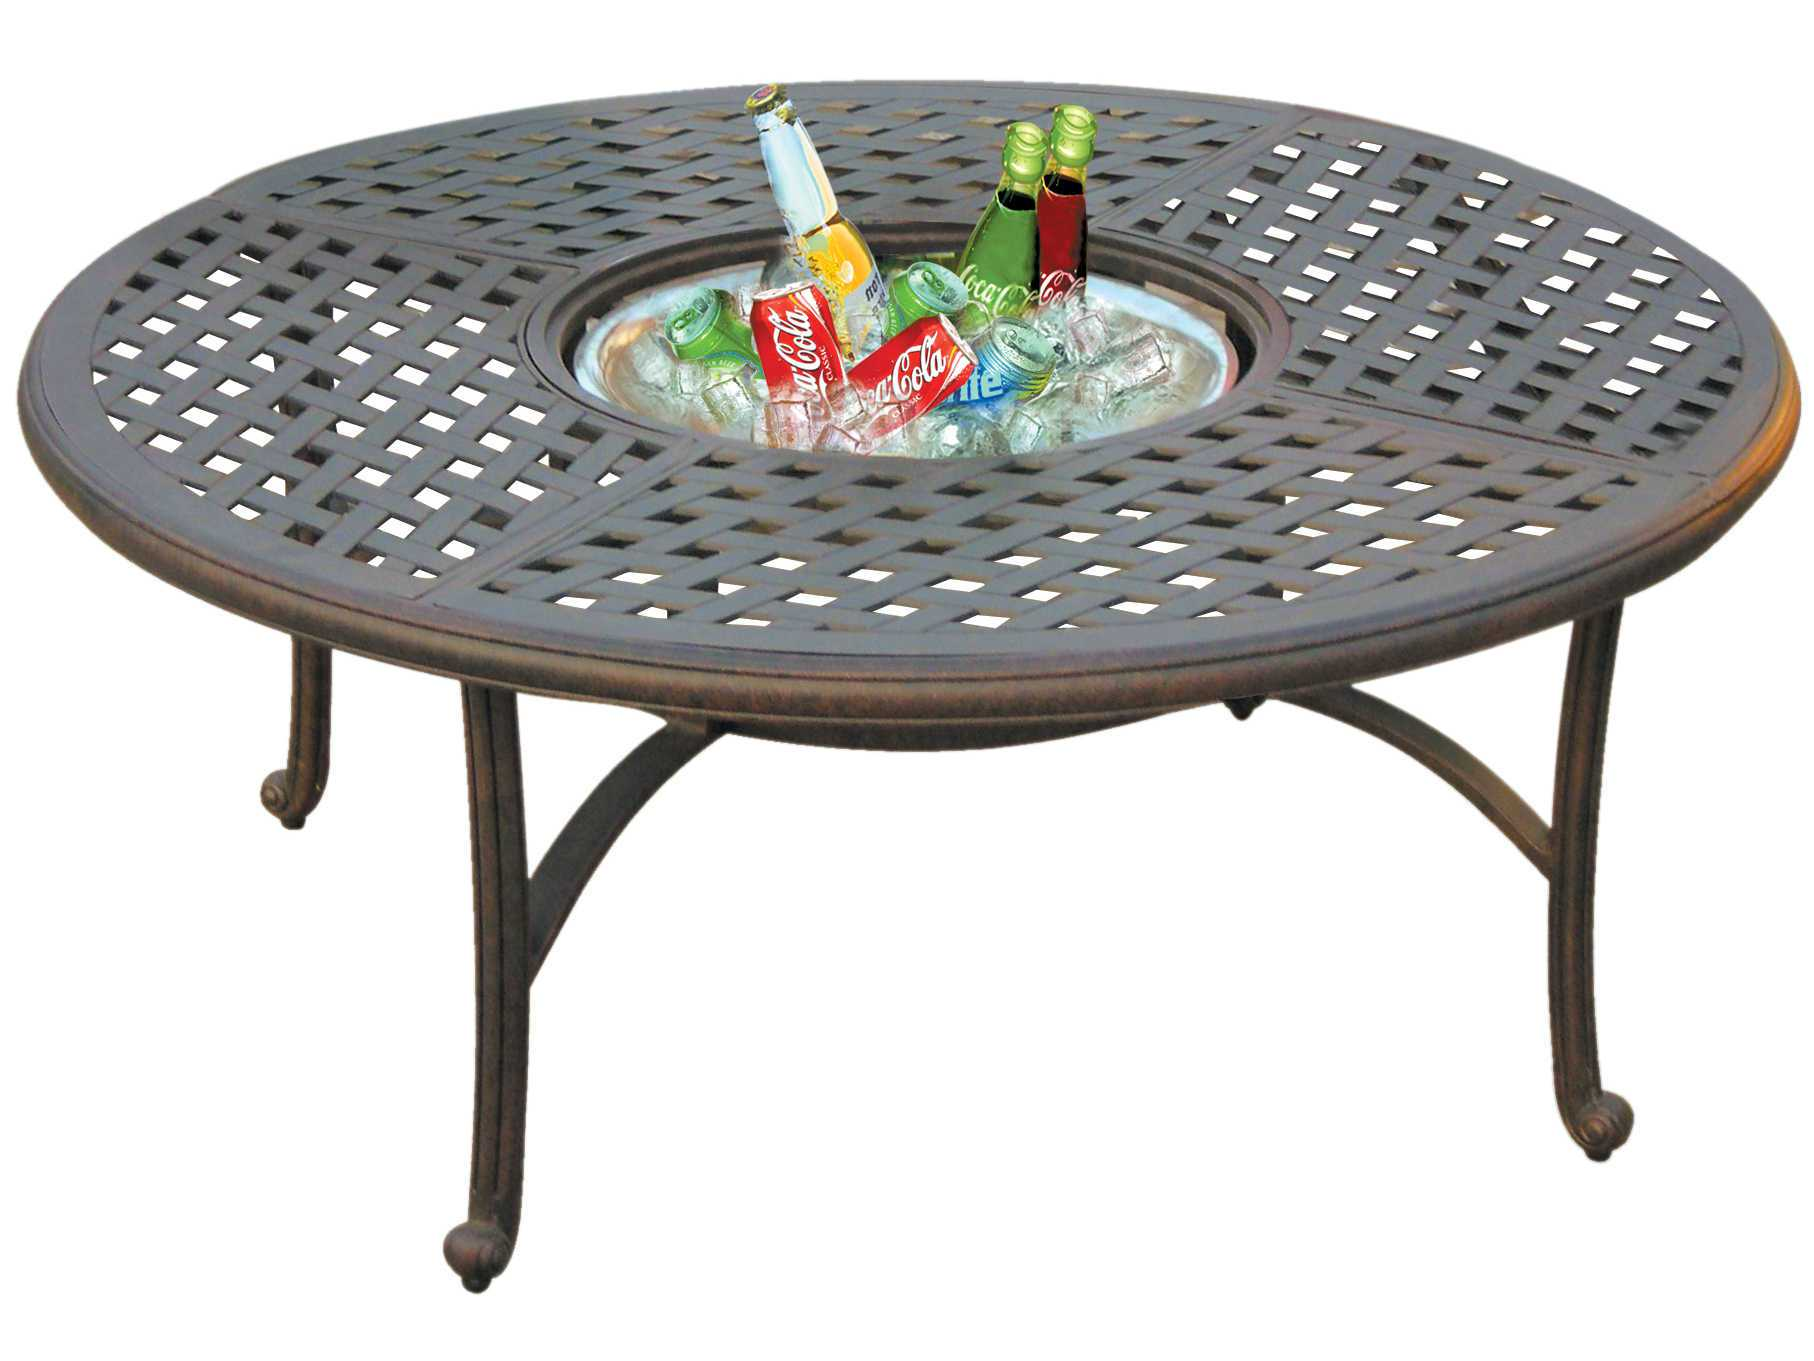 Marvelous photograph of   Aluminum Antique Bronze 52 Round Chat Table with Ice Bucket DL30 Q with #AC201F color and 1814x1361 pixels